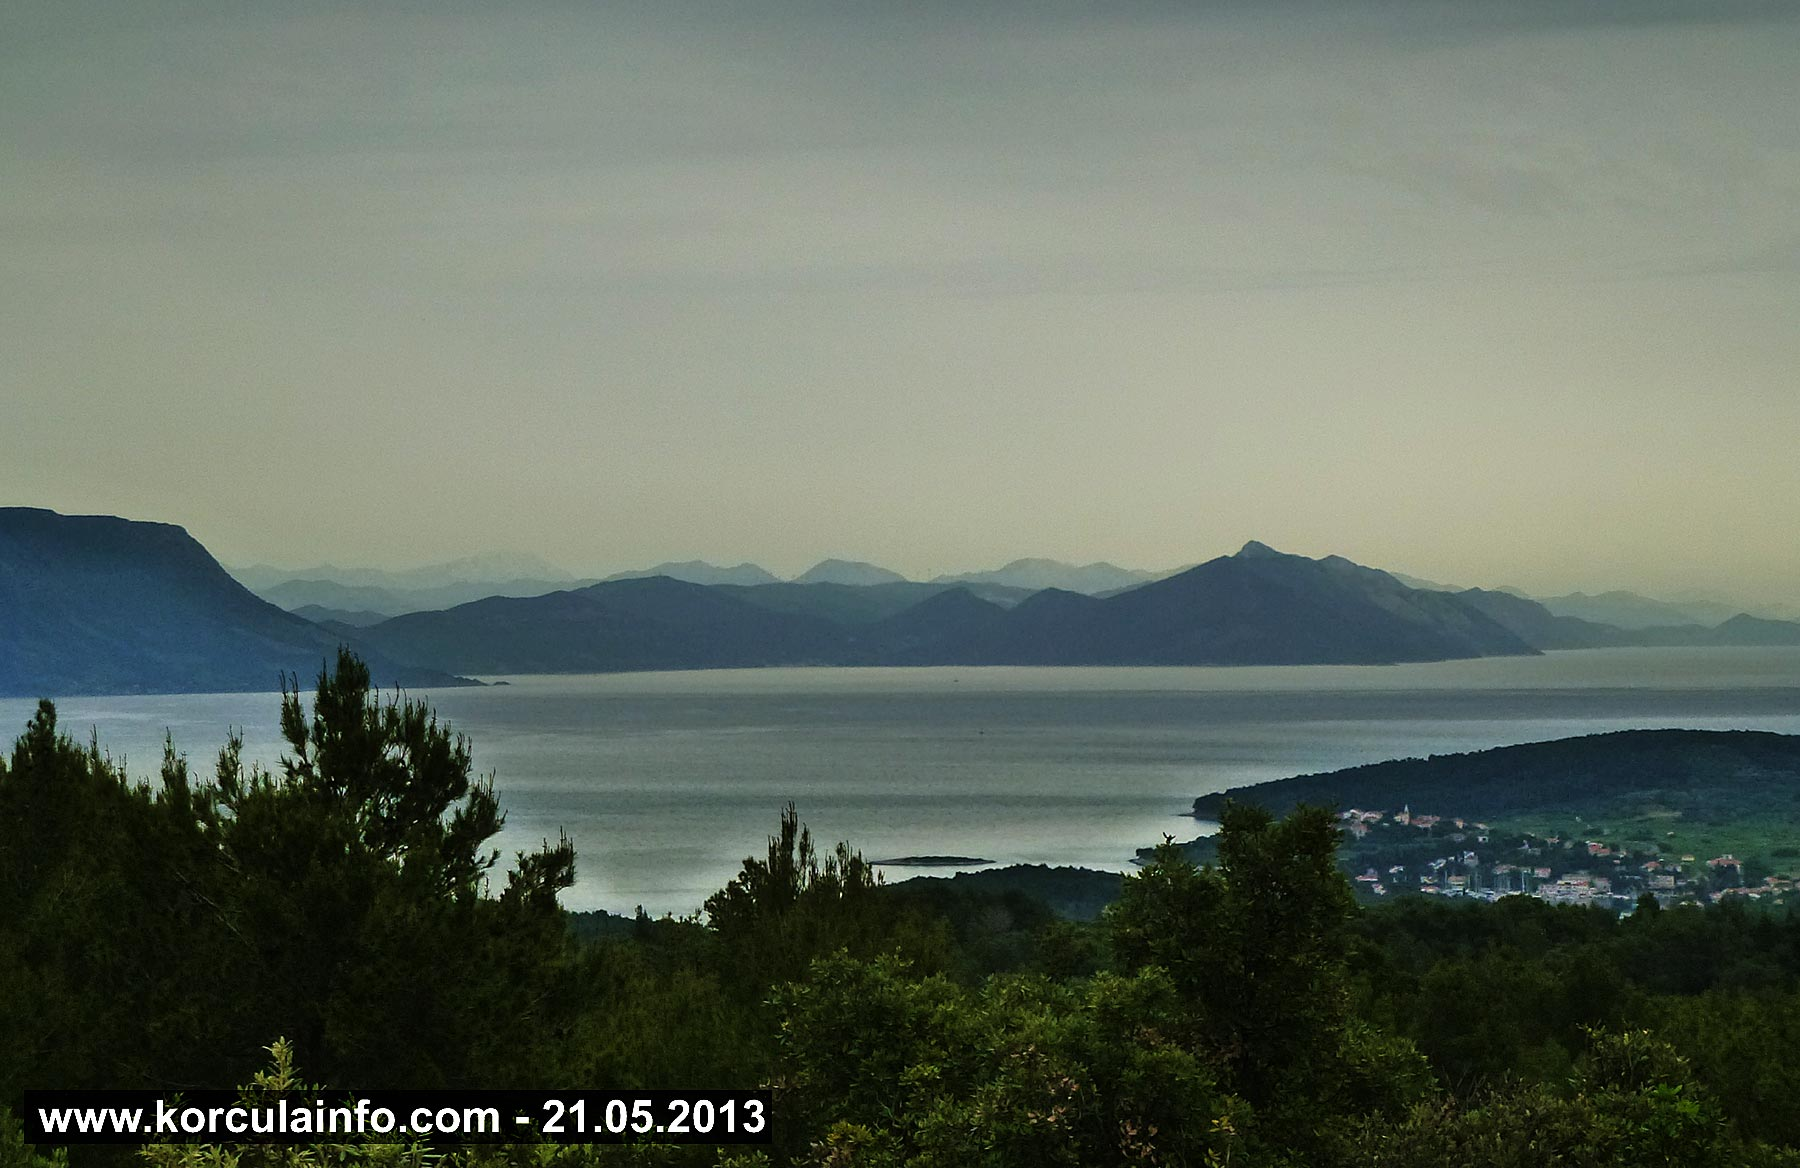 Views over Lumbarda, Peljesac and Channel just before the rain 21.05.2013